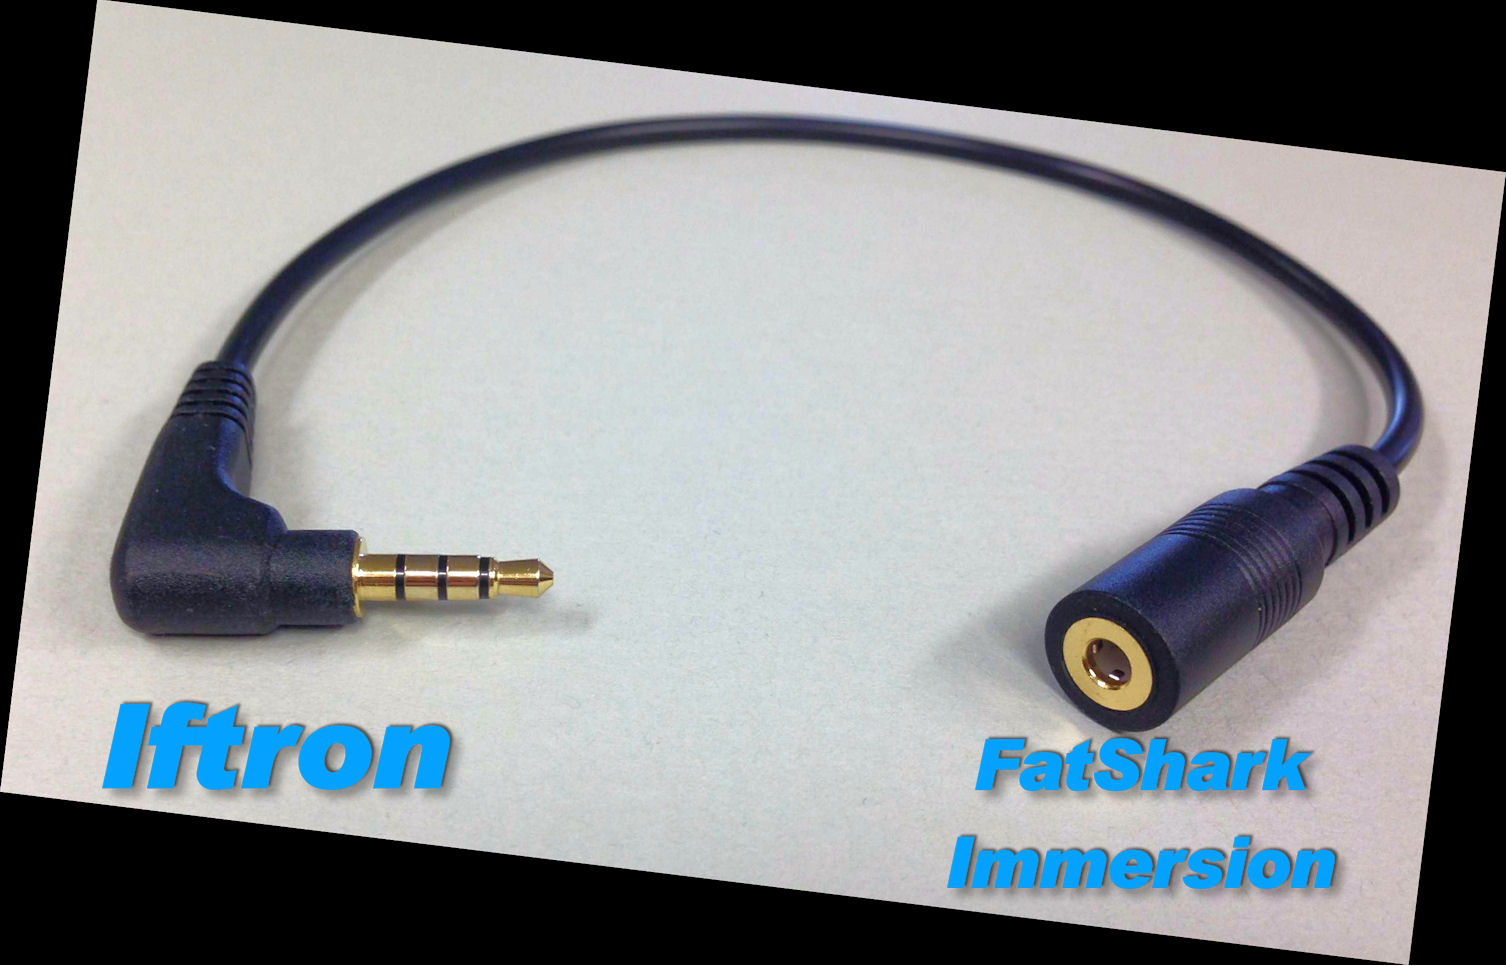 Iftron to FatShark Converter Cable